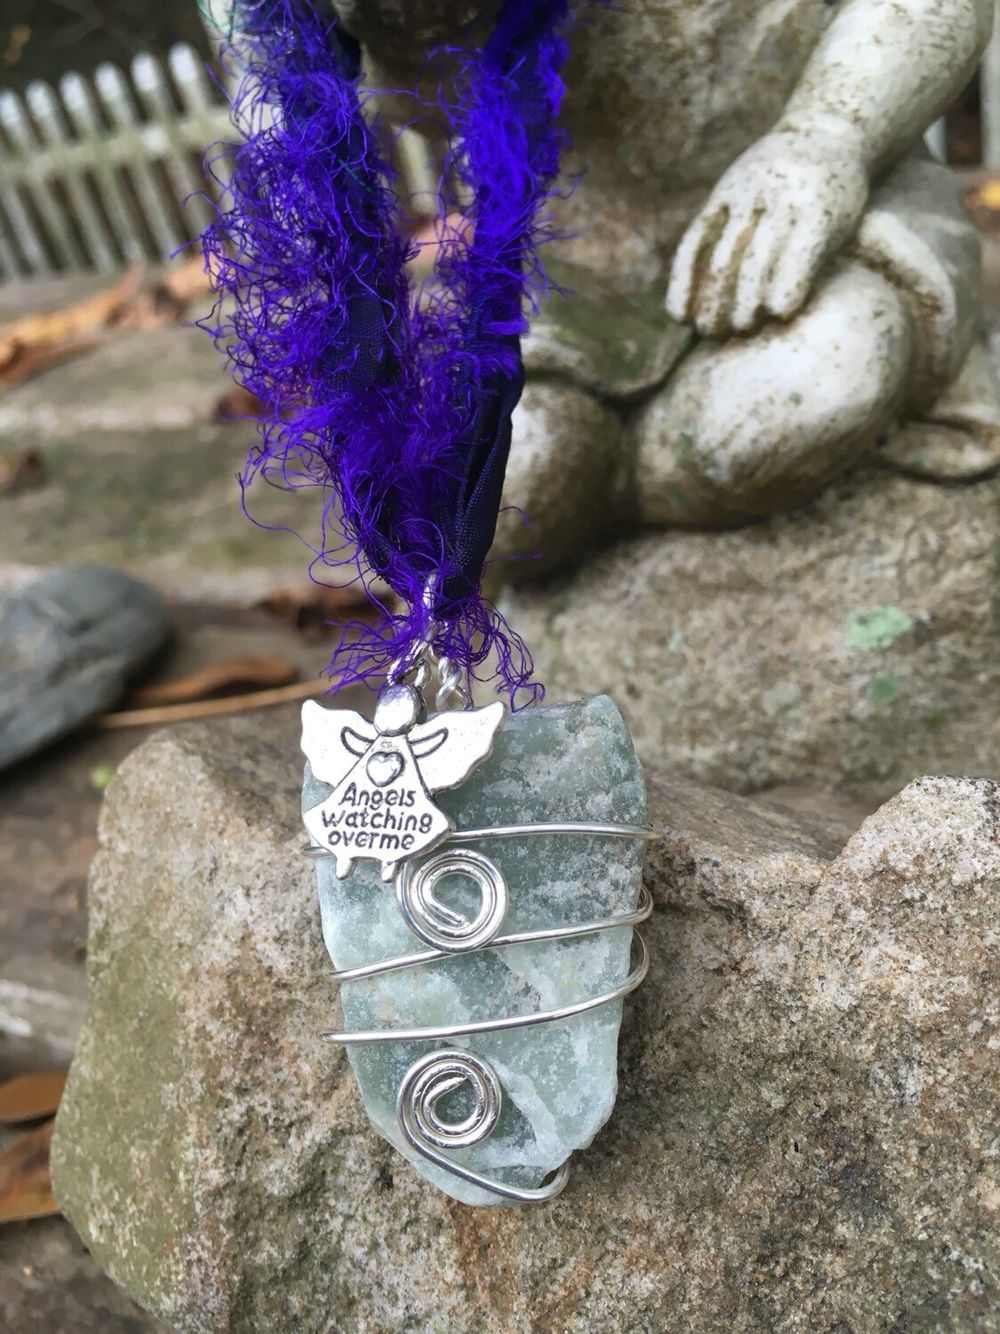 Custom wire-wrapped crystal ornaments, Reiki infused:  https://www.etsy.com/listing/261166855/custom-wire-wrapped-crystal-ornament  You will receive one gorgeous handcrafted crystal ornament/adornment.  The crystal is a color enhanced Quartz, I will intuitively and artistically choose the color.  If you have a strong color preference, please let me know in the checkout or in a private message, and we'll communicate about your options.   I will wire wrap it, apply the charm of your choice…